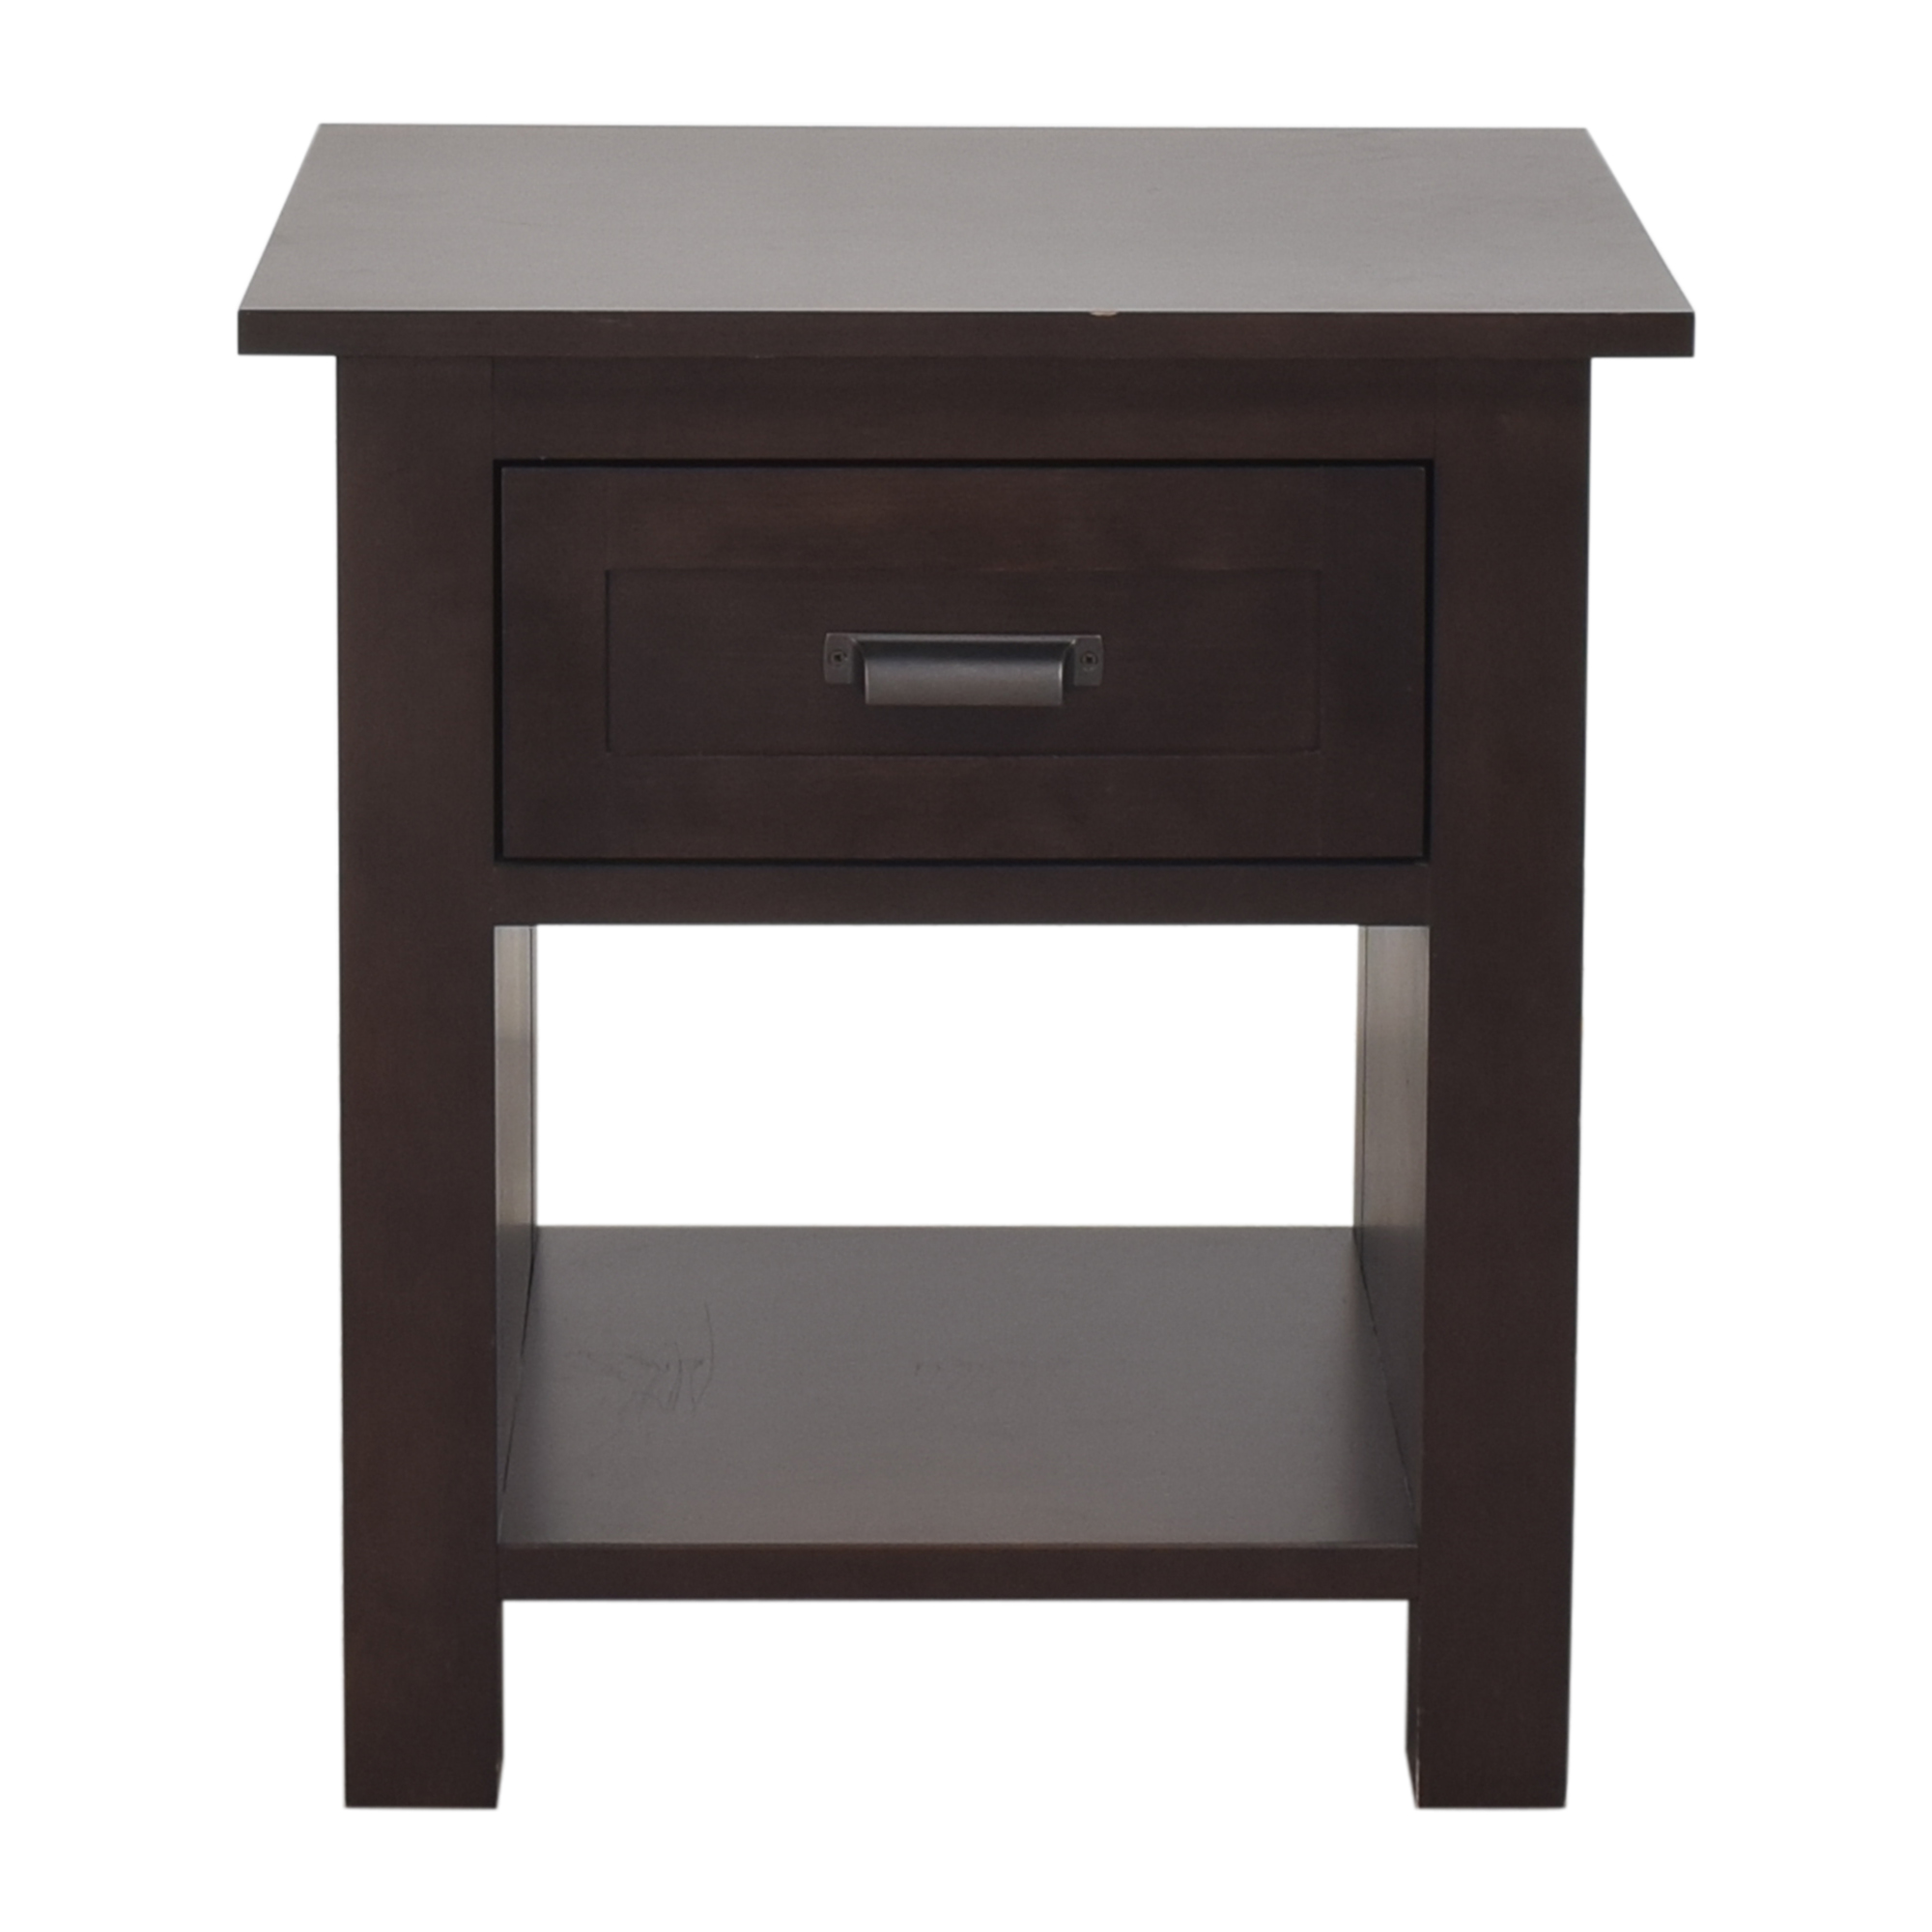 Room & Board Room & Board Bennett One Drawer Nightstand price